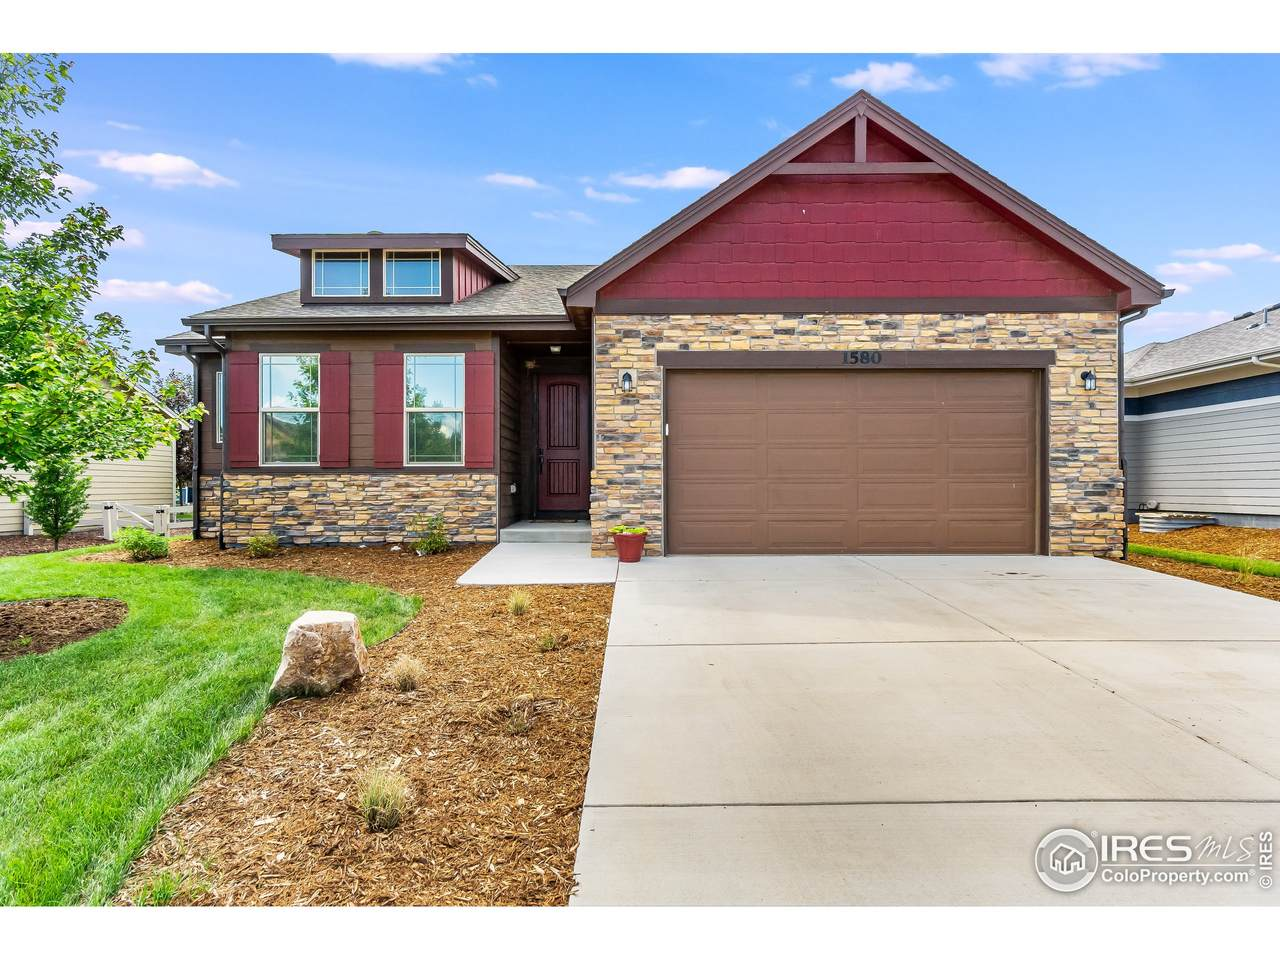 1580 Red Tail Rd - Photo 1